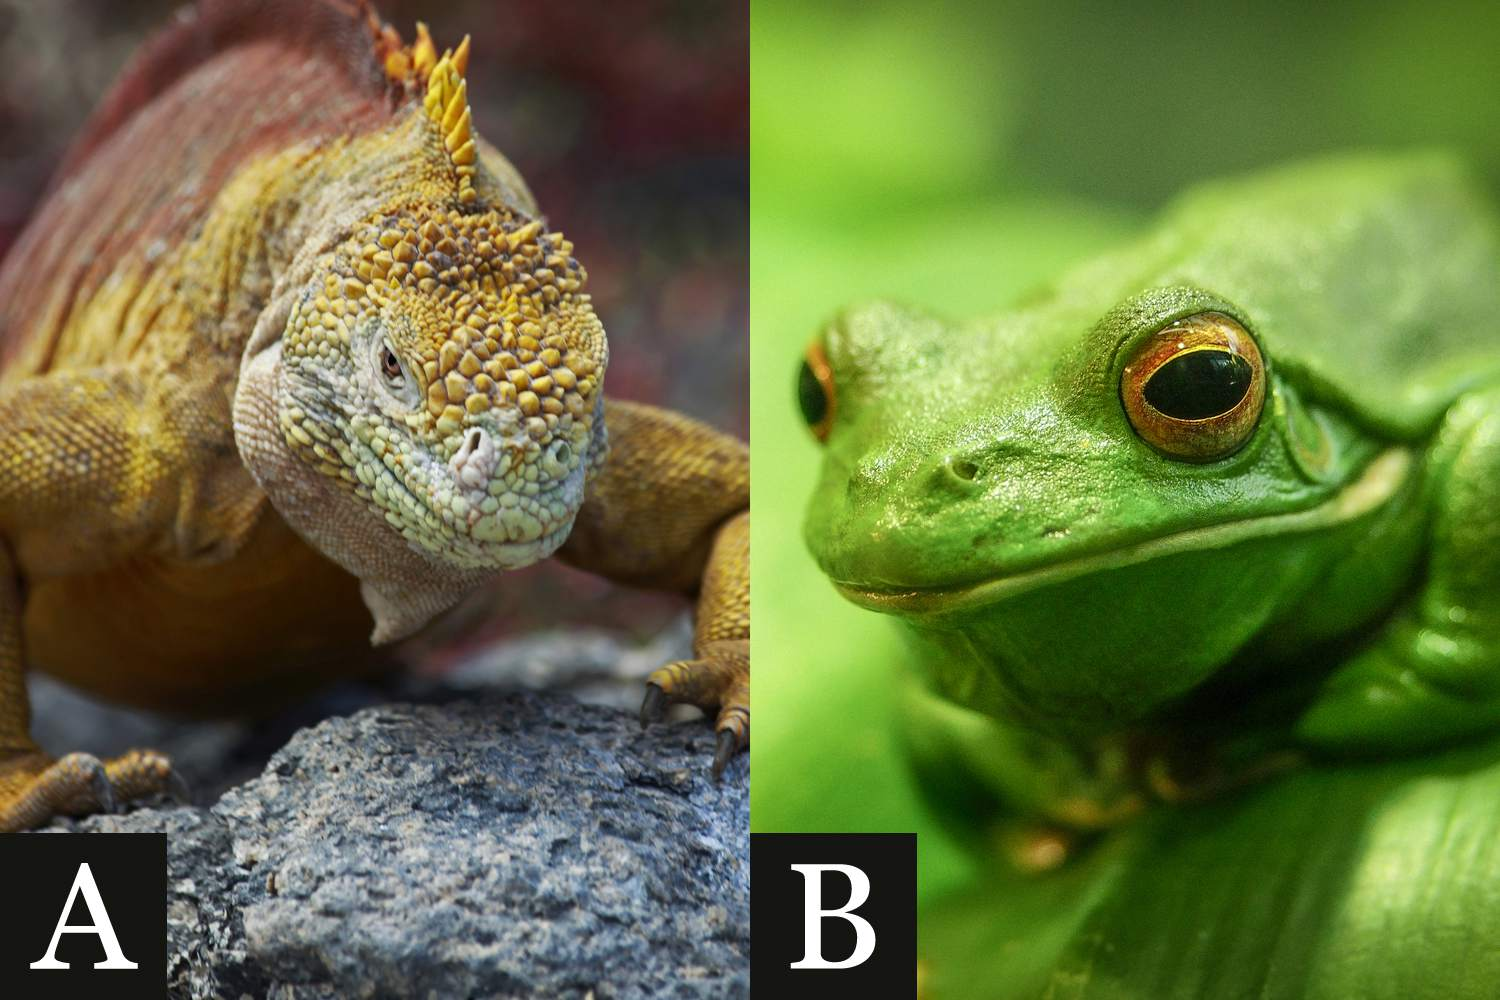 Find Out How To Tell Apart A Reptile And Amphibian